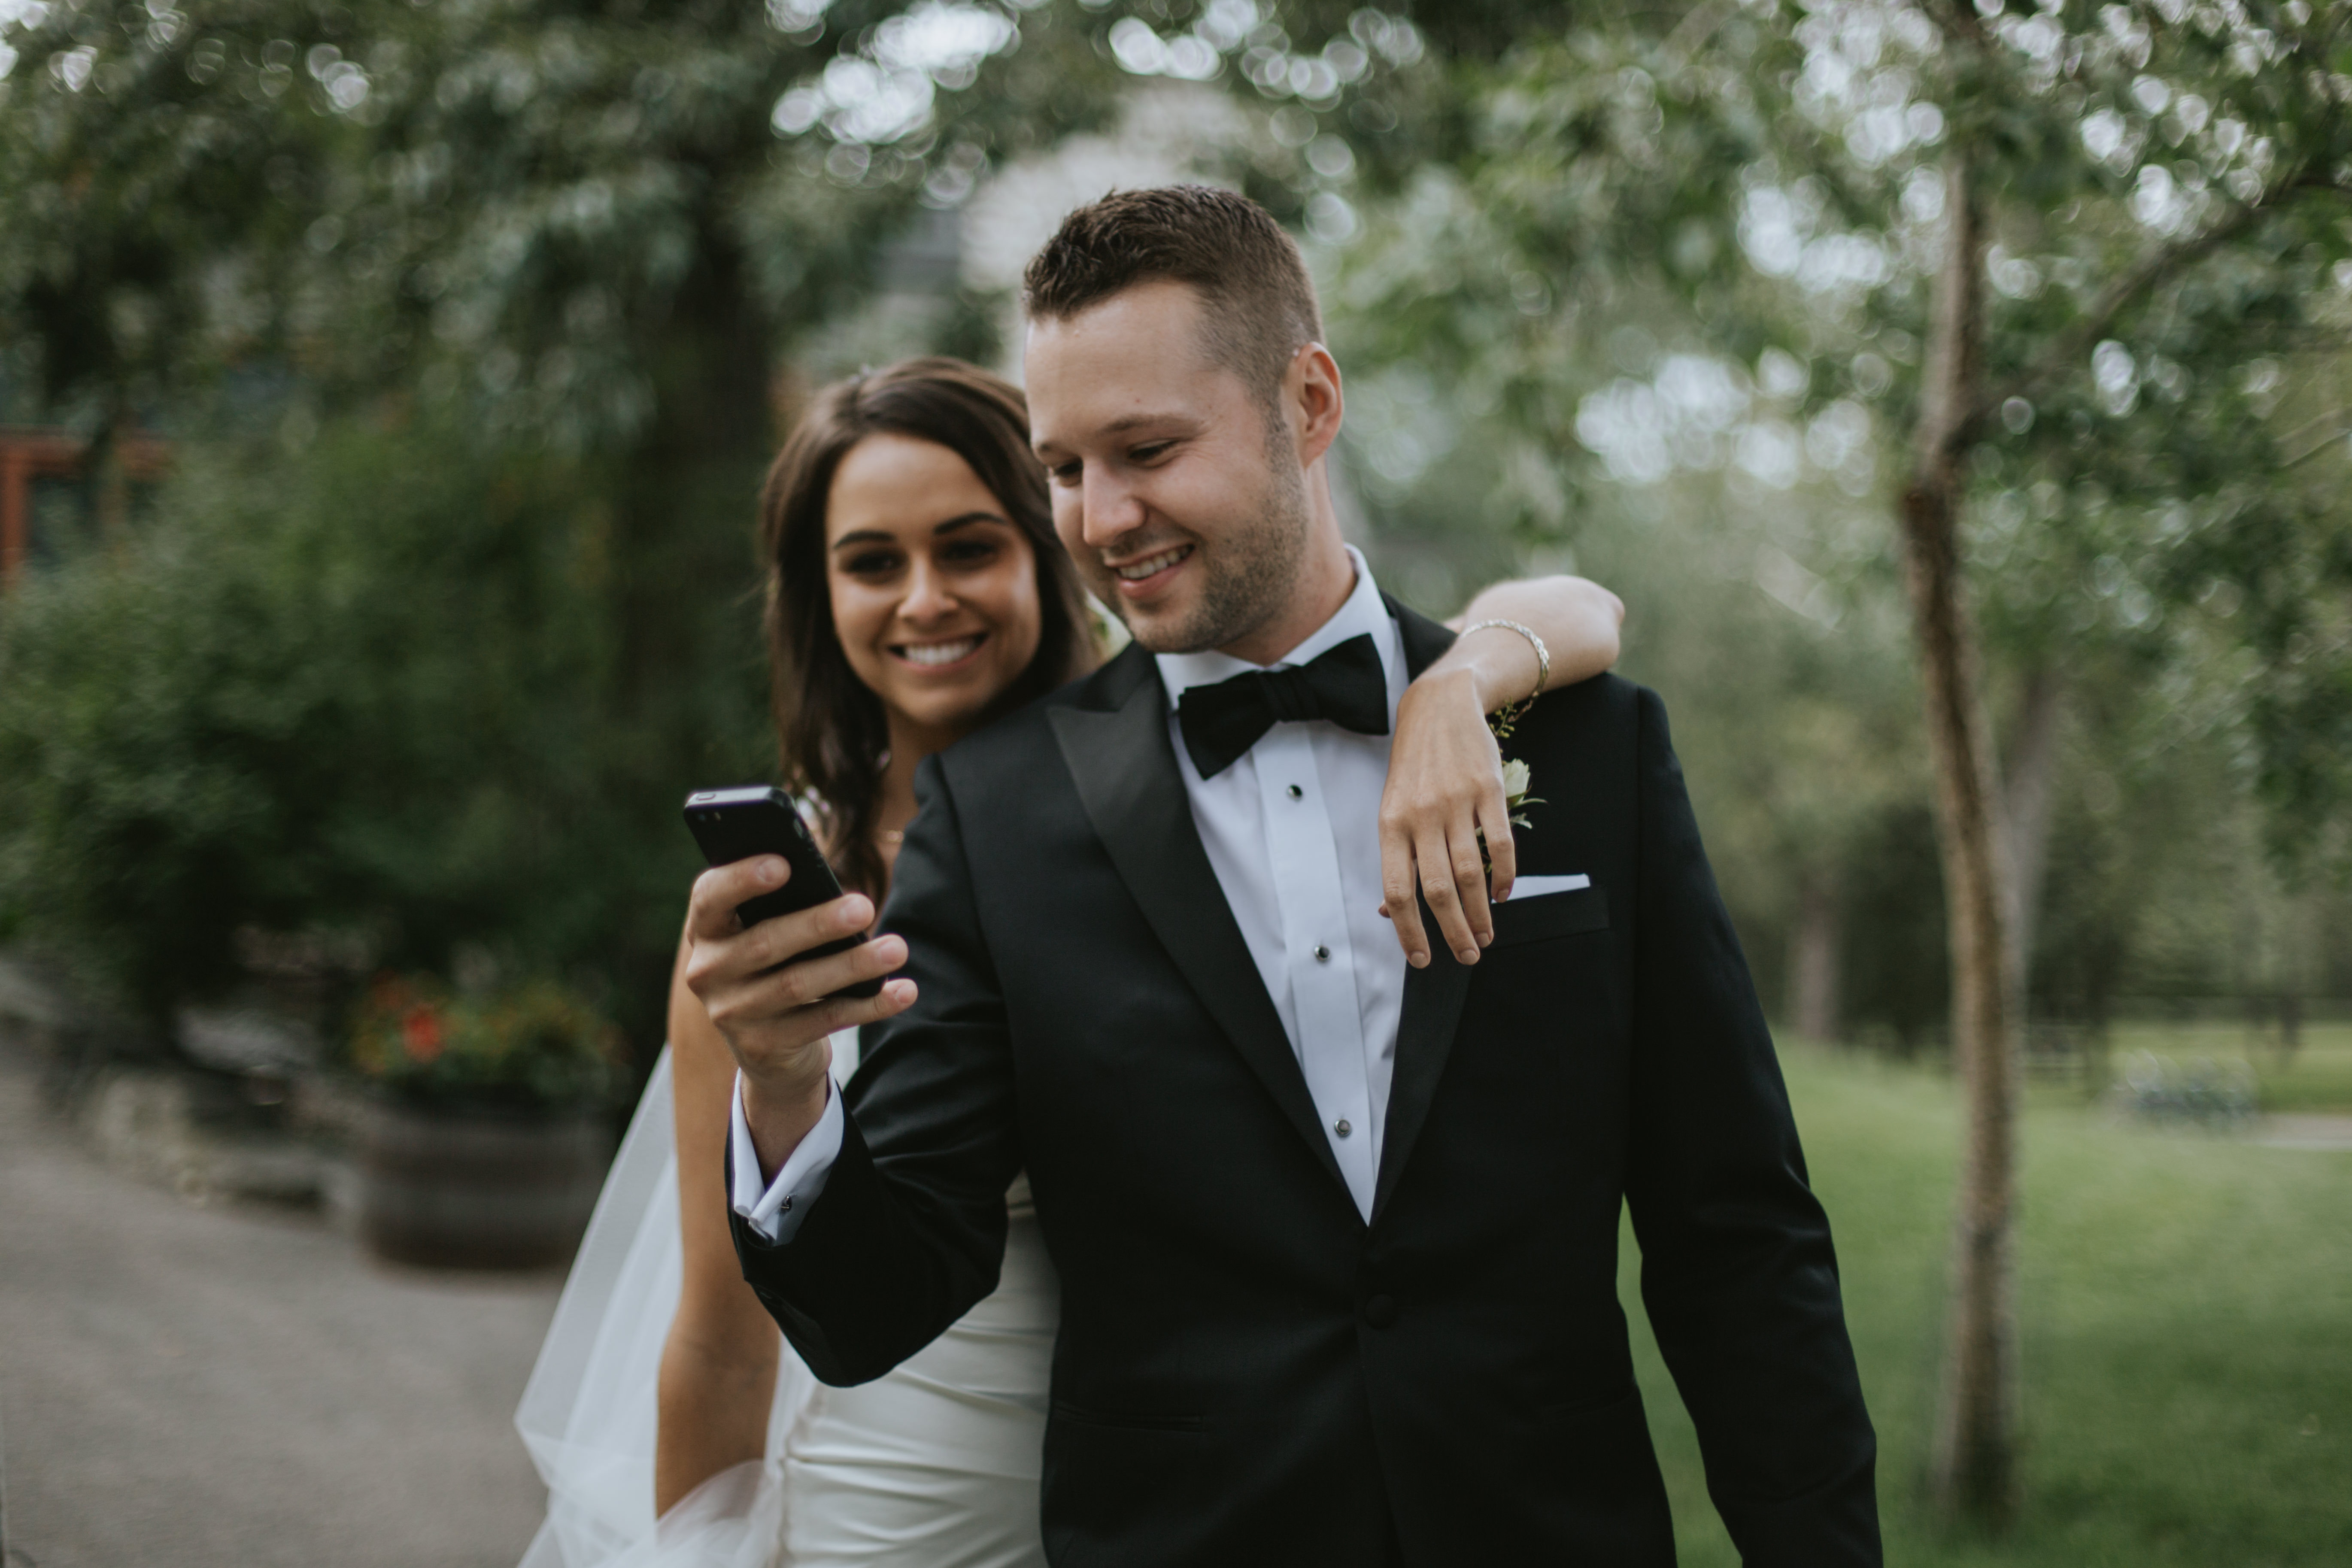 the bride and groom take a selfie